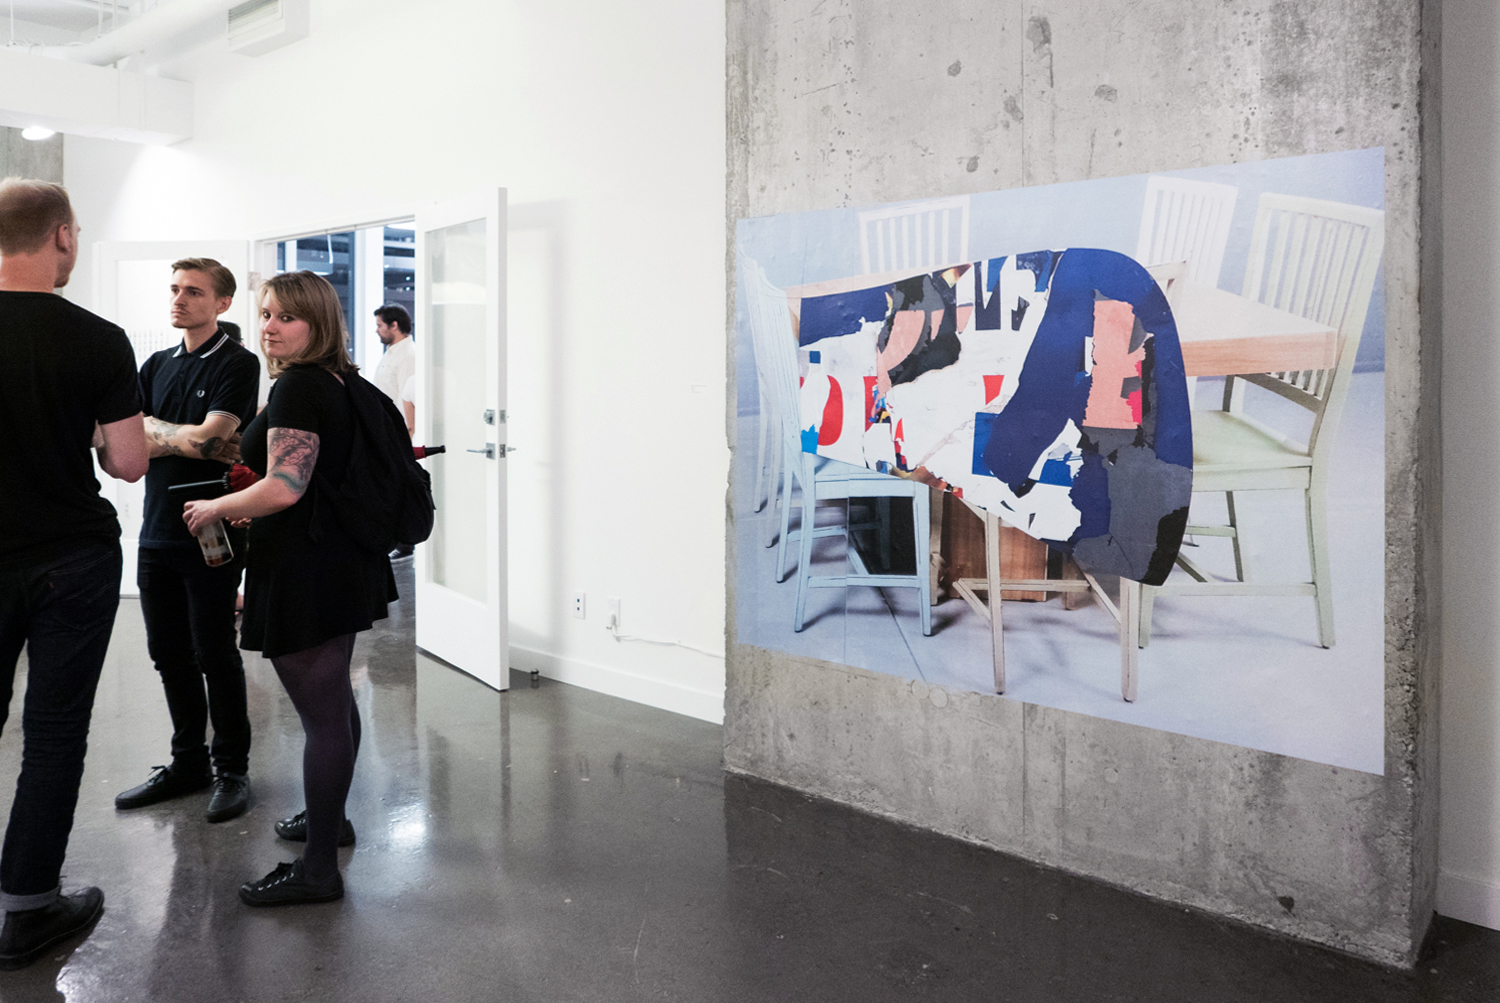 "Table Top   (installation view at YTB gallery, Toronto),   Polina Teif and Shannon Garden-Smith,   74"" x 55.5"", digital adhesive vinyl print,  2015"